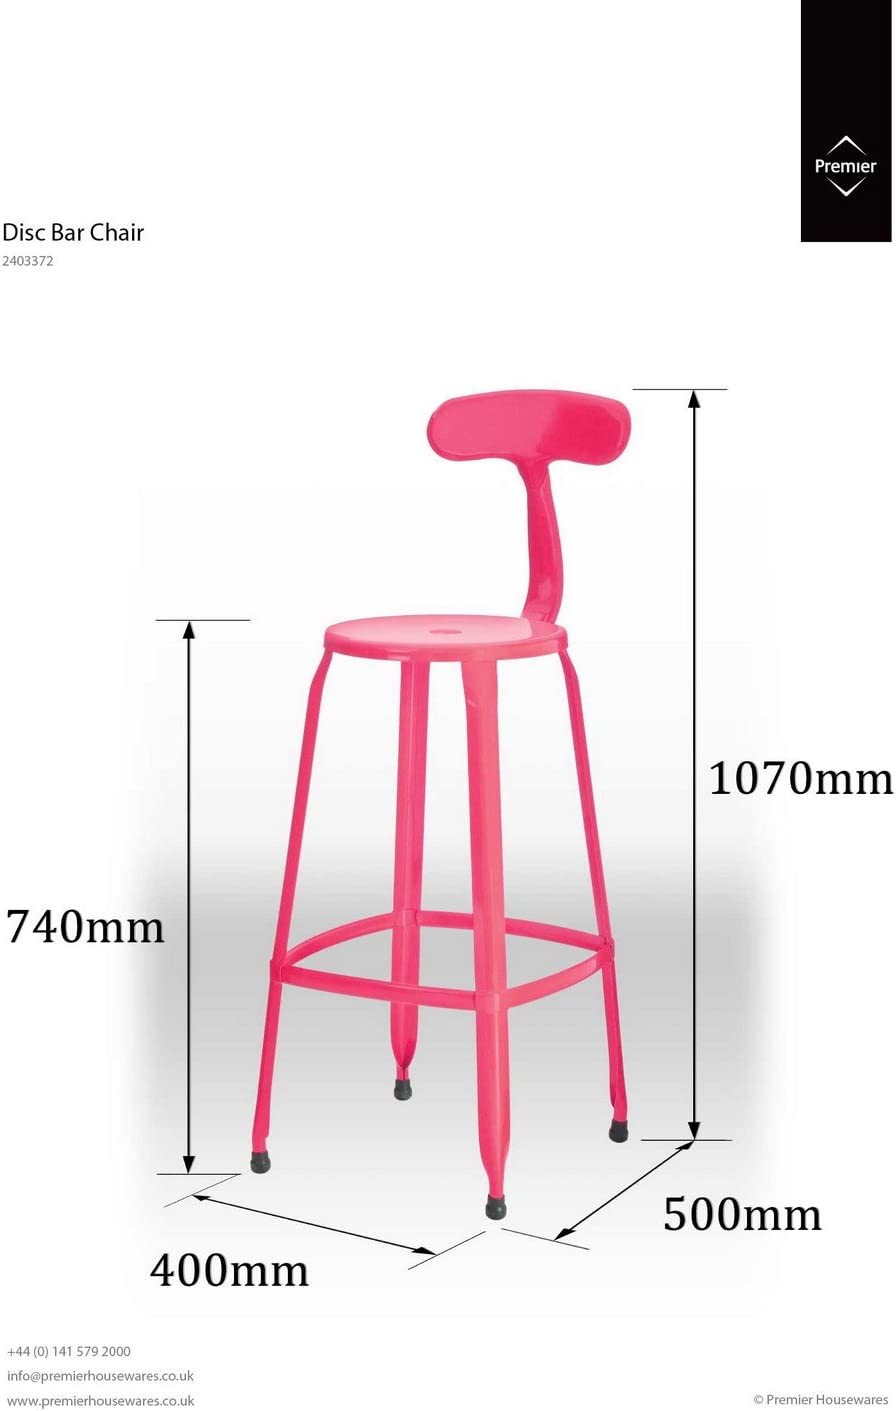 Premier Housewares Hot Pink Disc Bar Stool with Step [Set of 4]